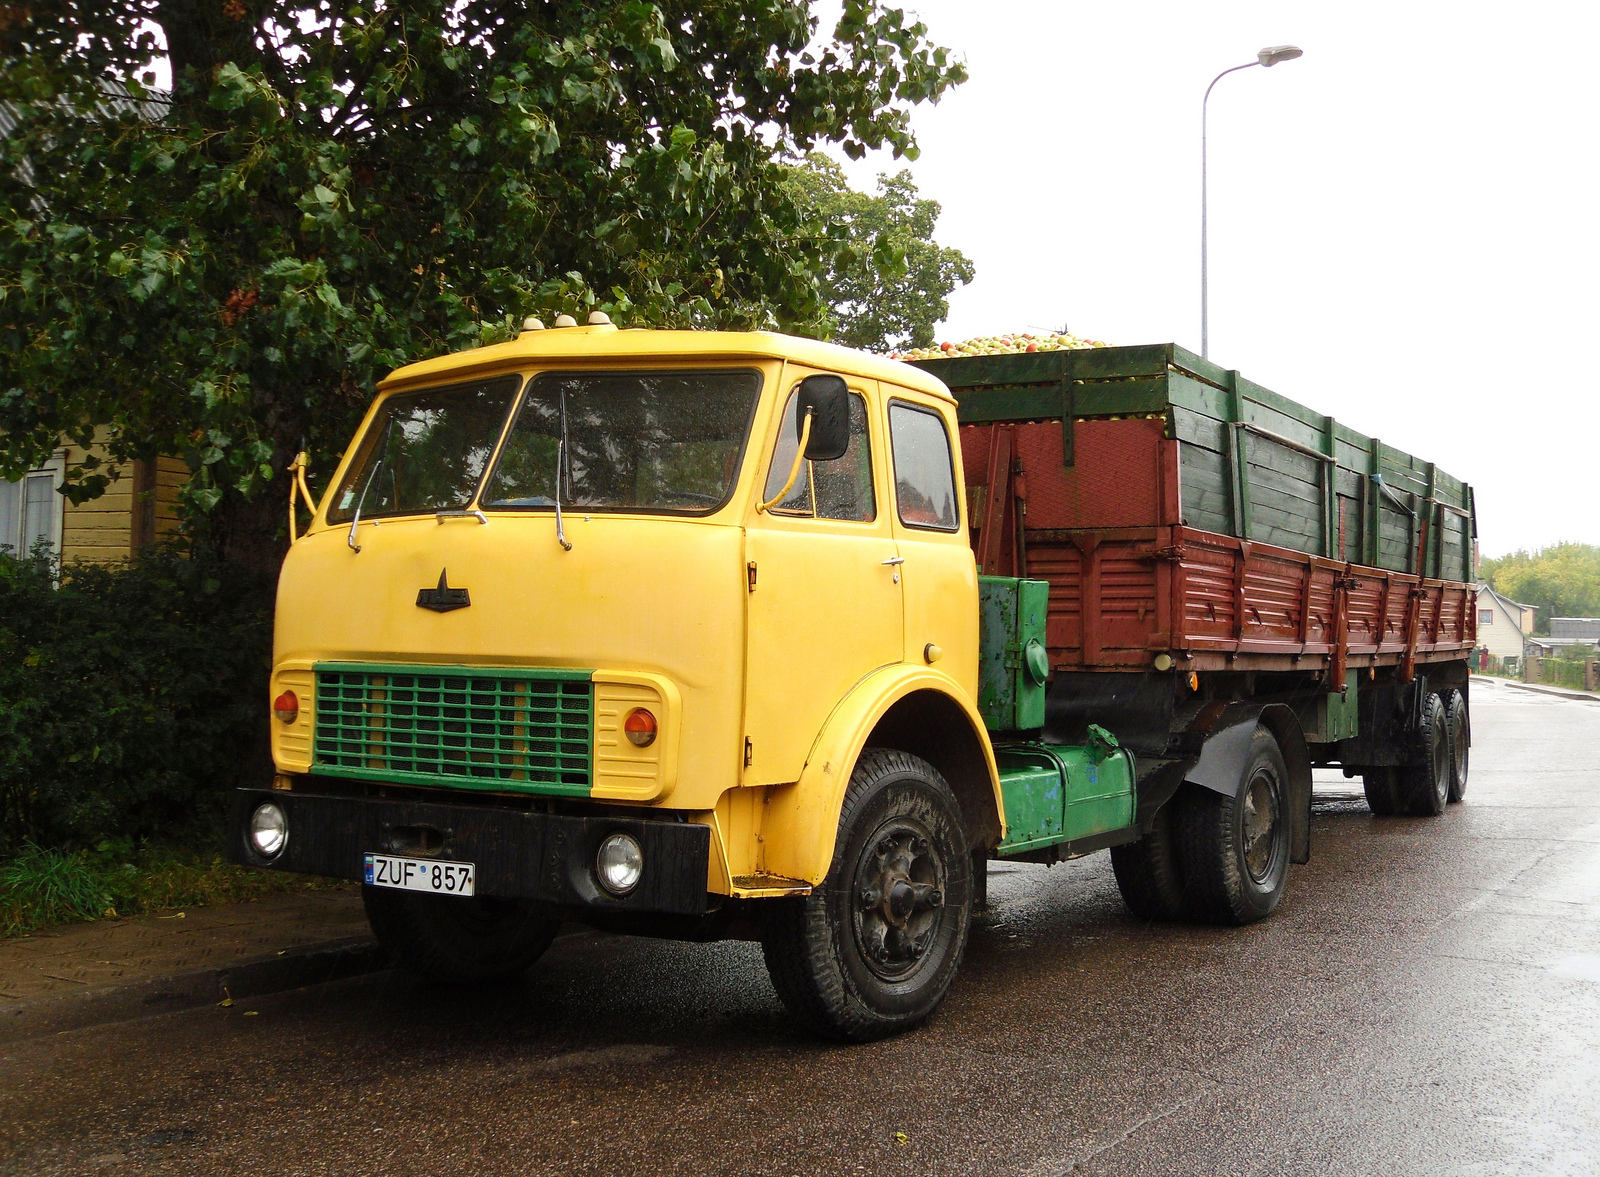 MAZ Truck | Flickr - Photo Sharing!